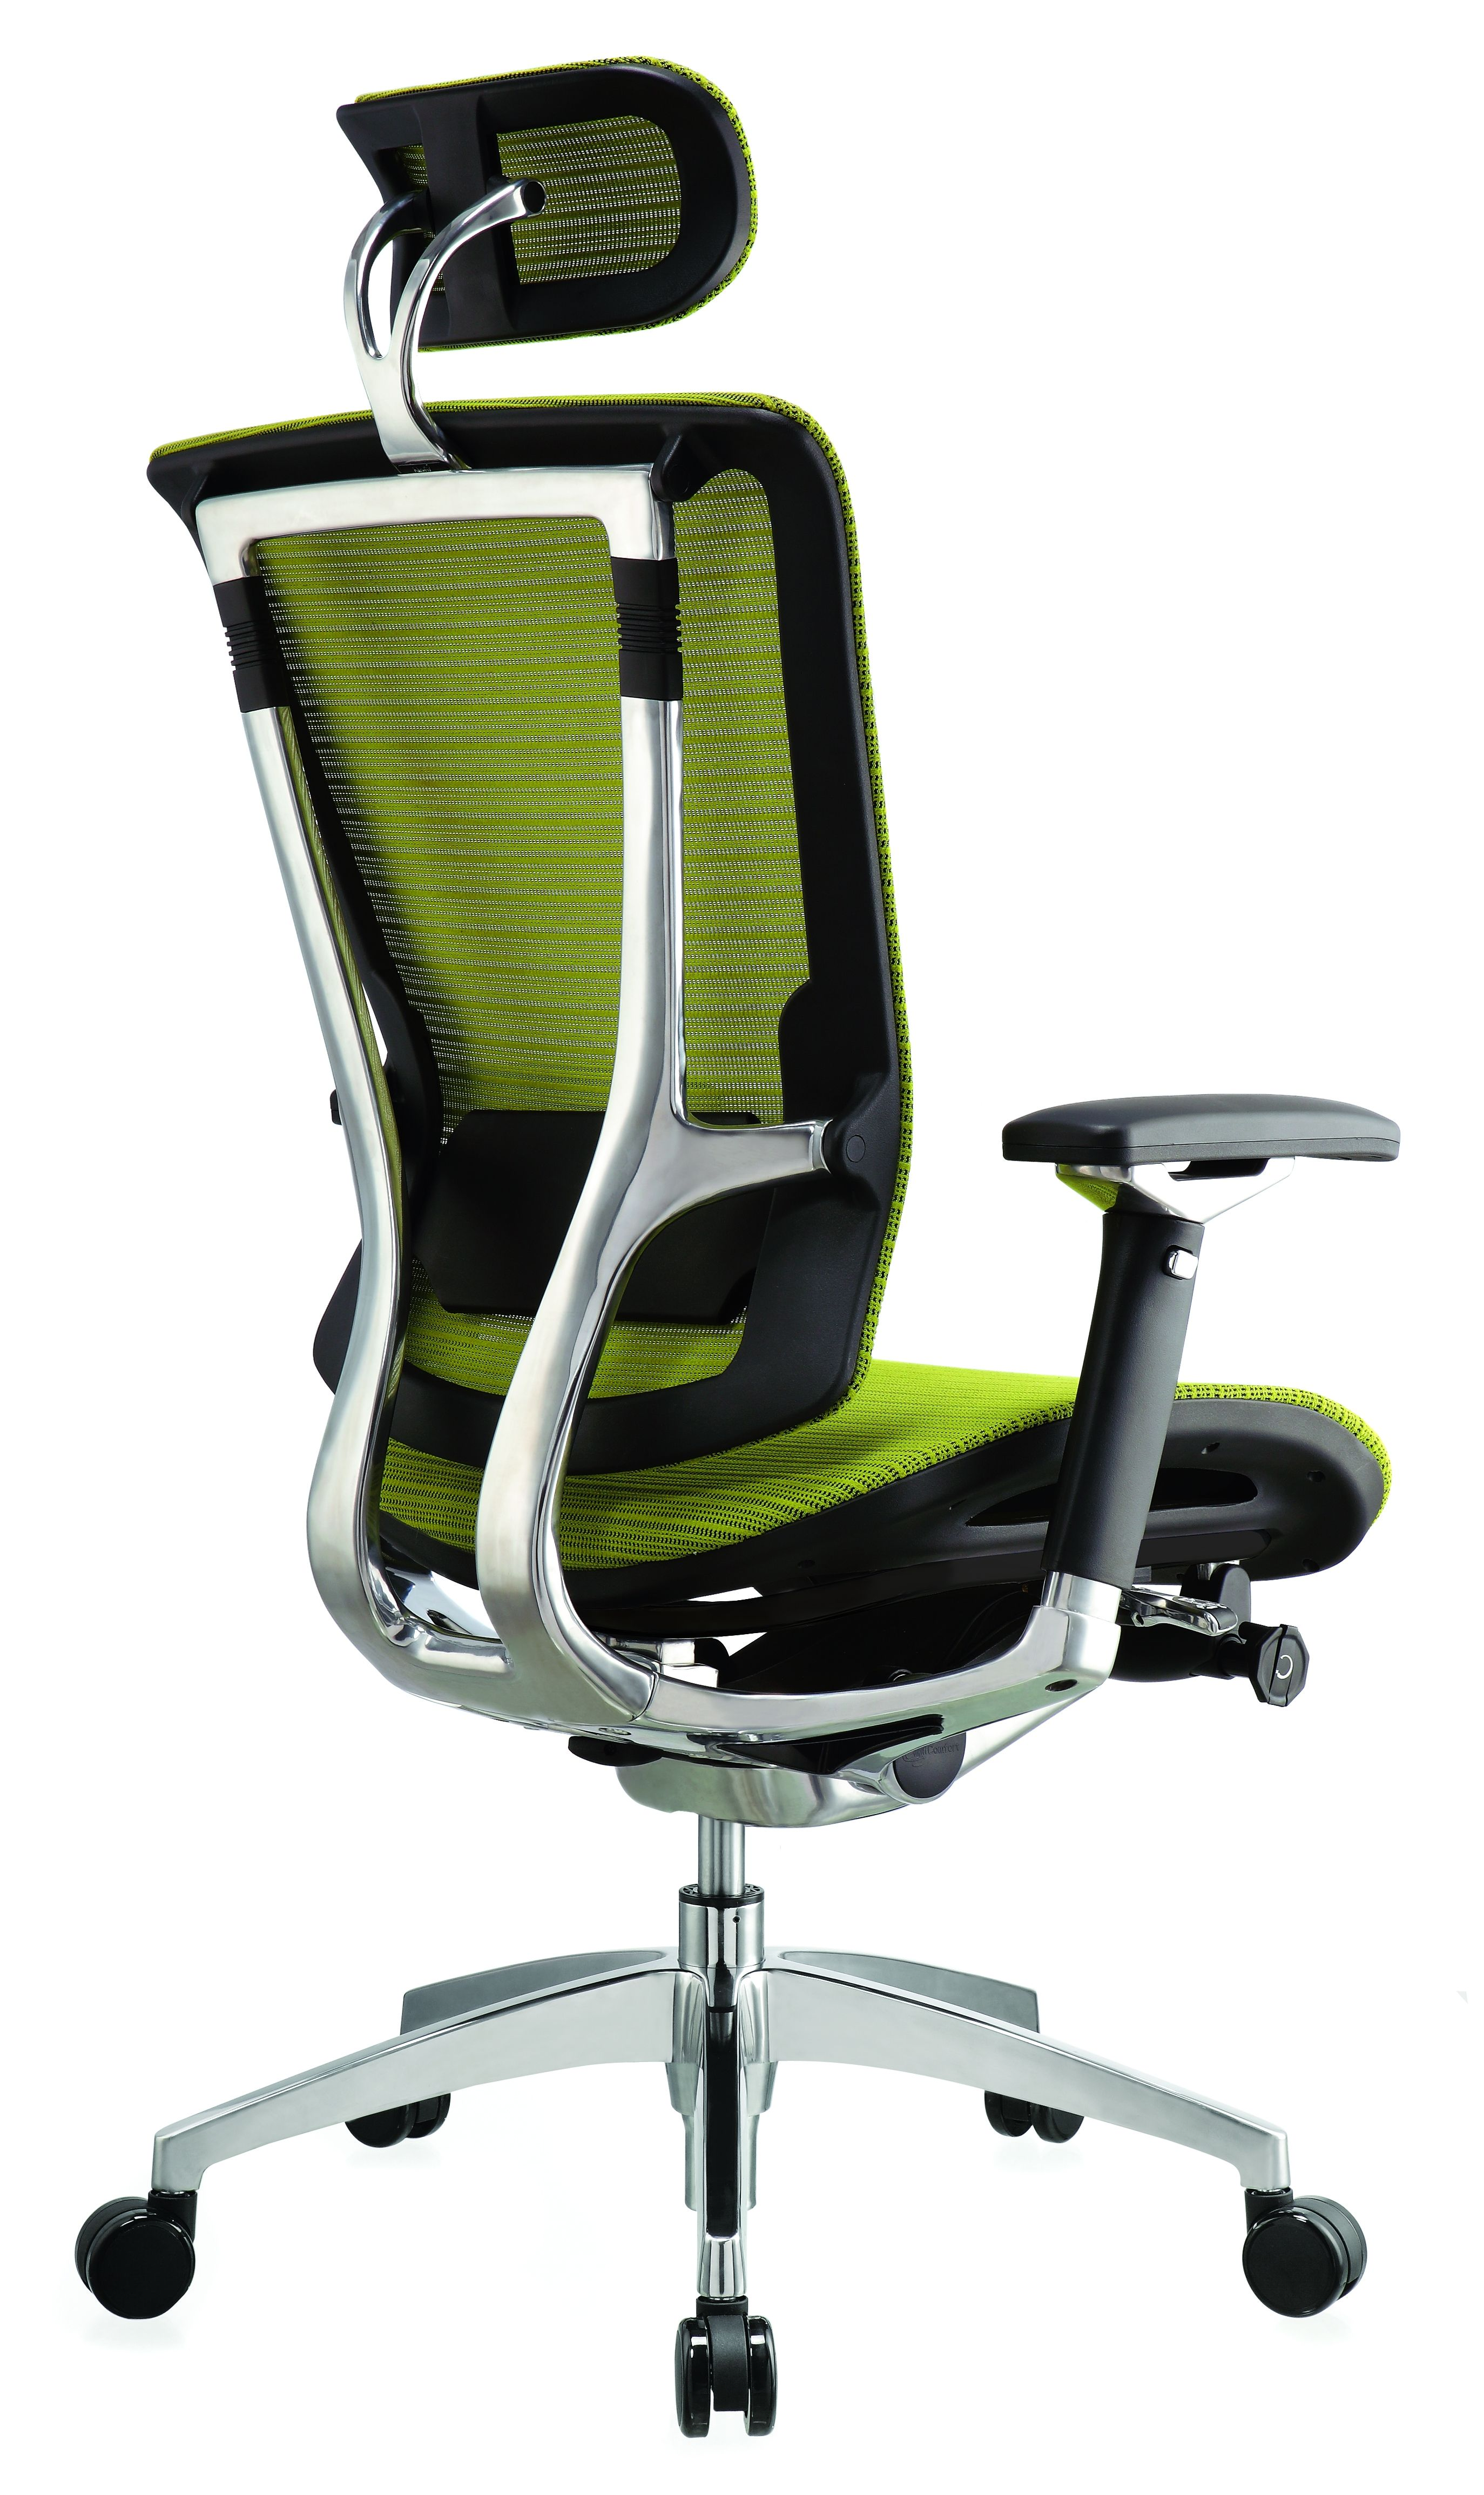 Best Counter Height Office Chair Office Chair Best Office Chair Ergonomic Desk Chair